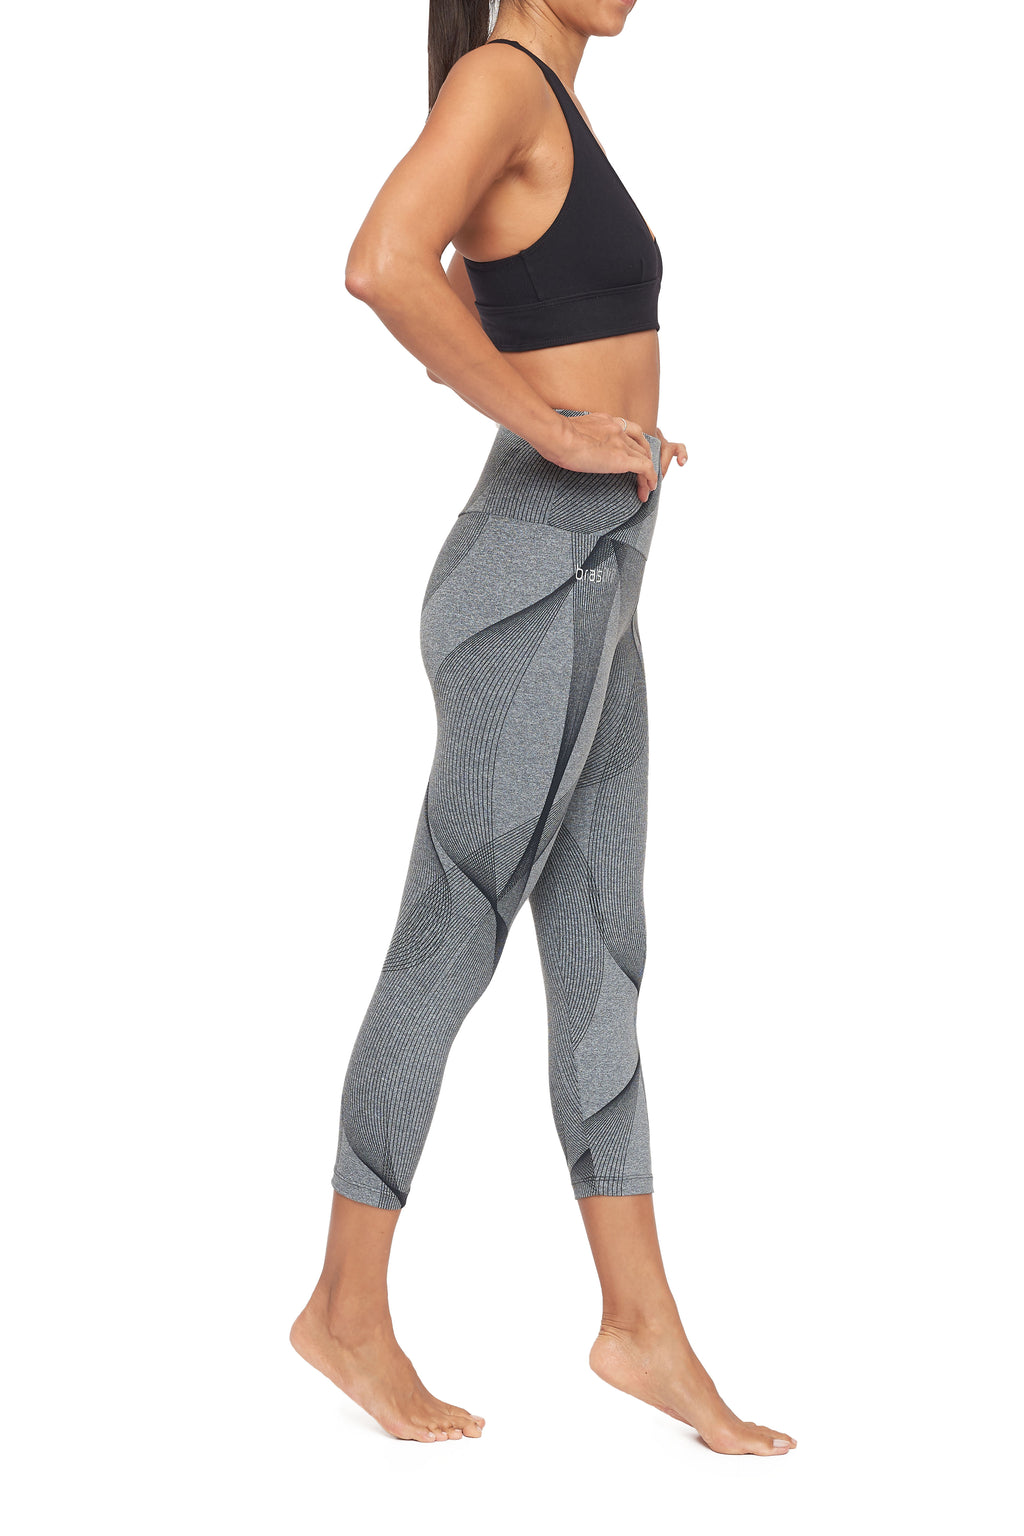 Toledo High Waisted Mid Calf Legging